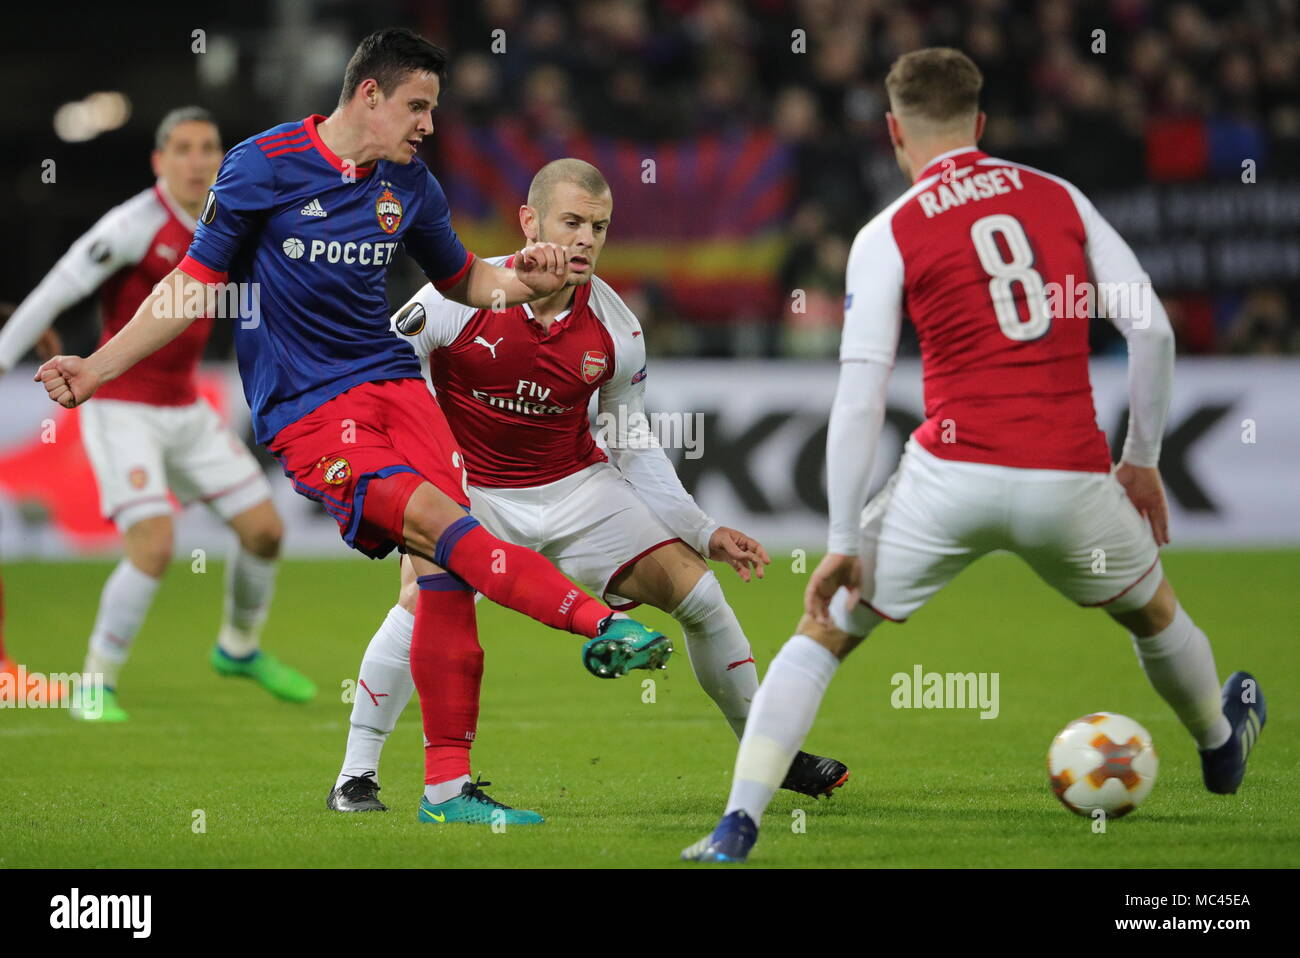 Moscow, Russia. 12th Apr, 2018. MOSCOW, RUSSIA - APRIL 12, 2018: CSKA Moscow's Kristijan Bistrovic and Arsenal F.C.'s Jack Wilshere, Aaron Ramsey (L-R) in action in their 2017-2018 UEFA Europa League quarterfinal second leg football match at VEB Arena (Arena CSKA). Sergei Bobylev/TASS Credit: ITAR-TASS News Agency/Alamy Live News - Stock Image